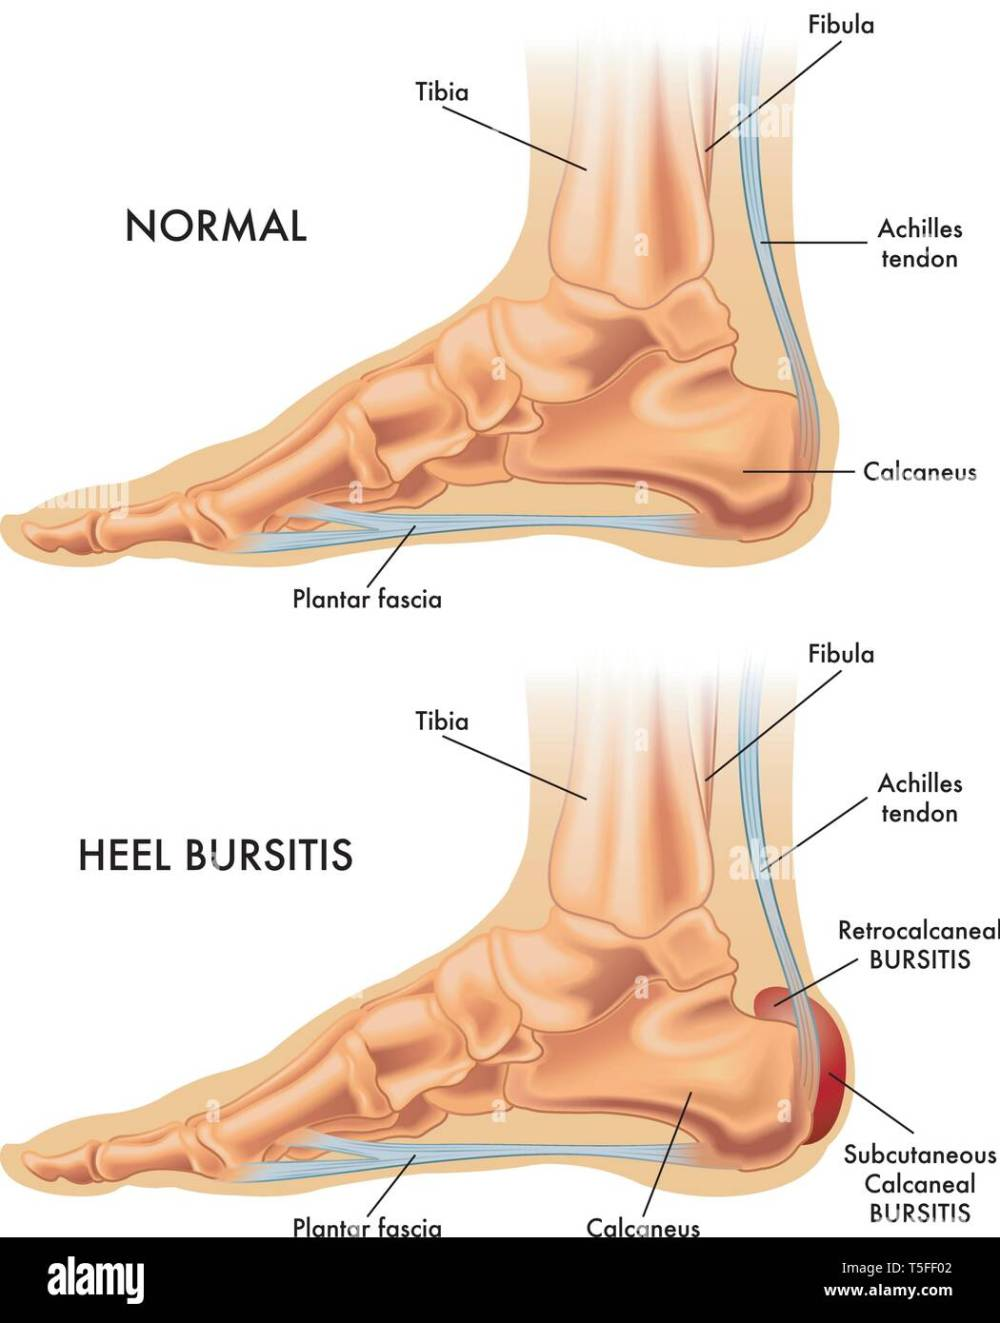 medium resolution of a medical illustration of a healthy foot and a foot affected by heel bursitis